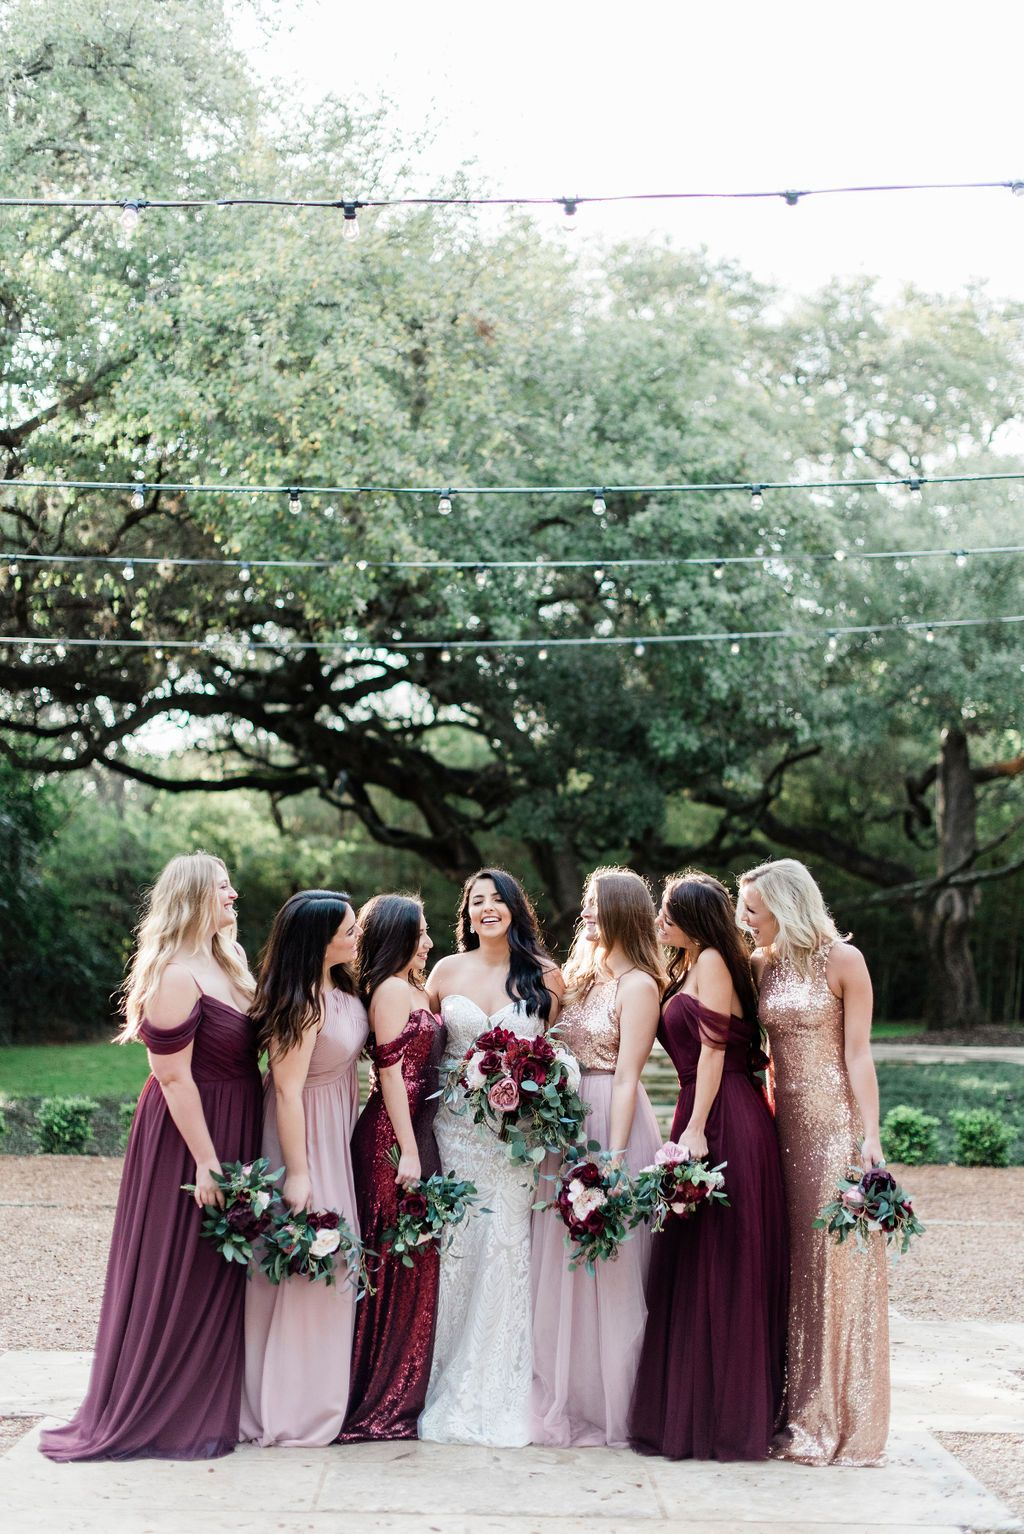 Mix And Match Bridesmaid Dresses Available In Shades Of Cabernet